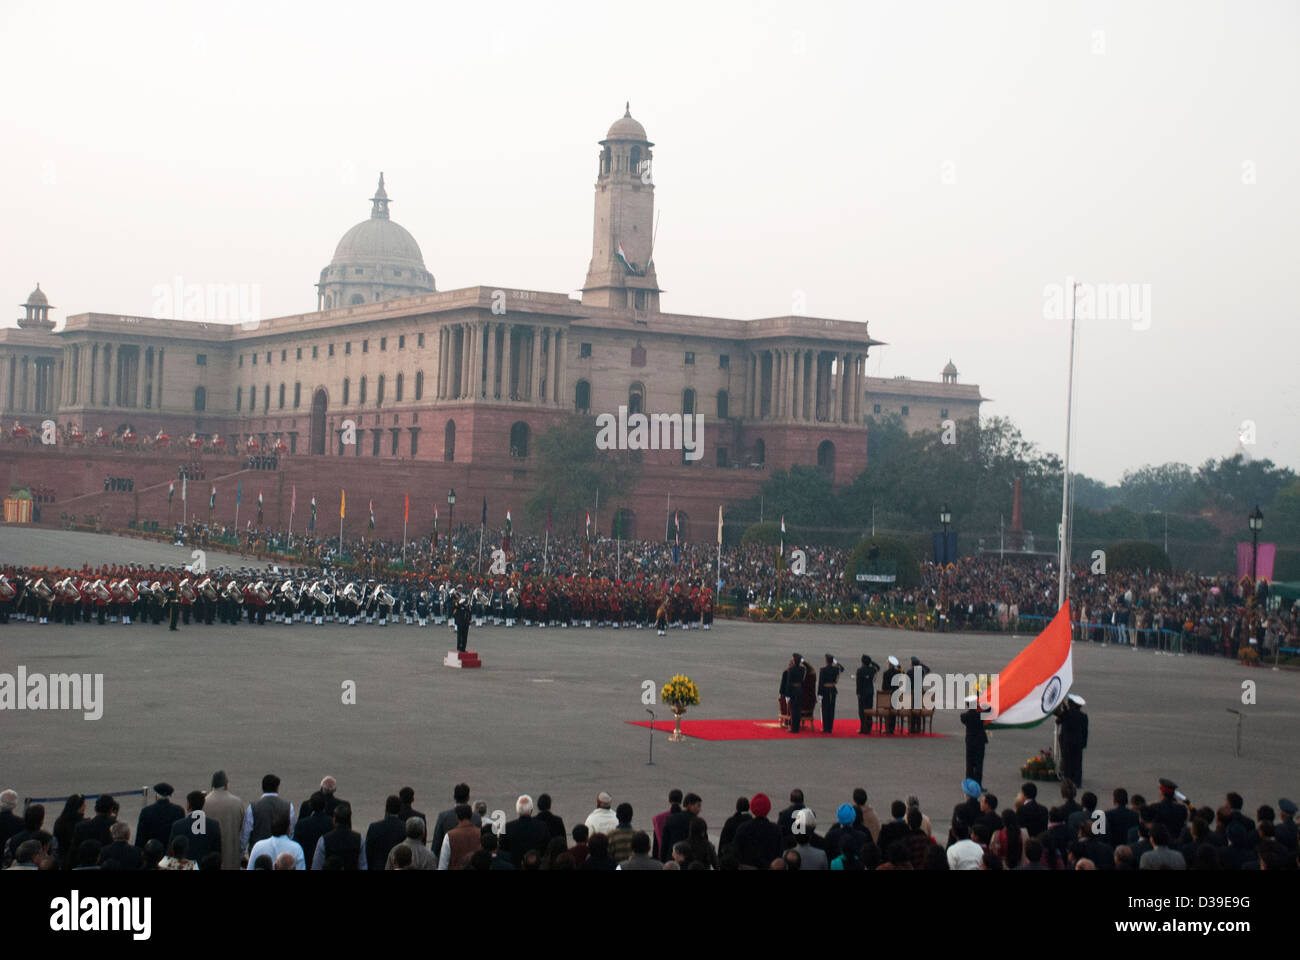 Flag being lowered at the end of Beating Retreat Ceremony. - Stock Image